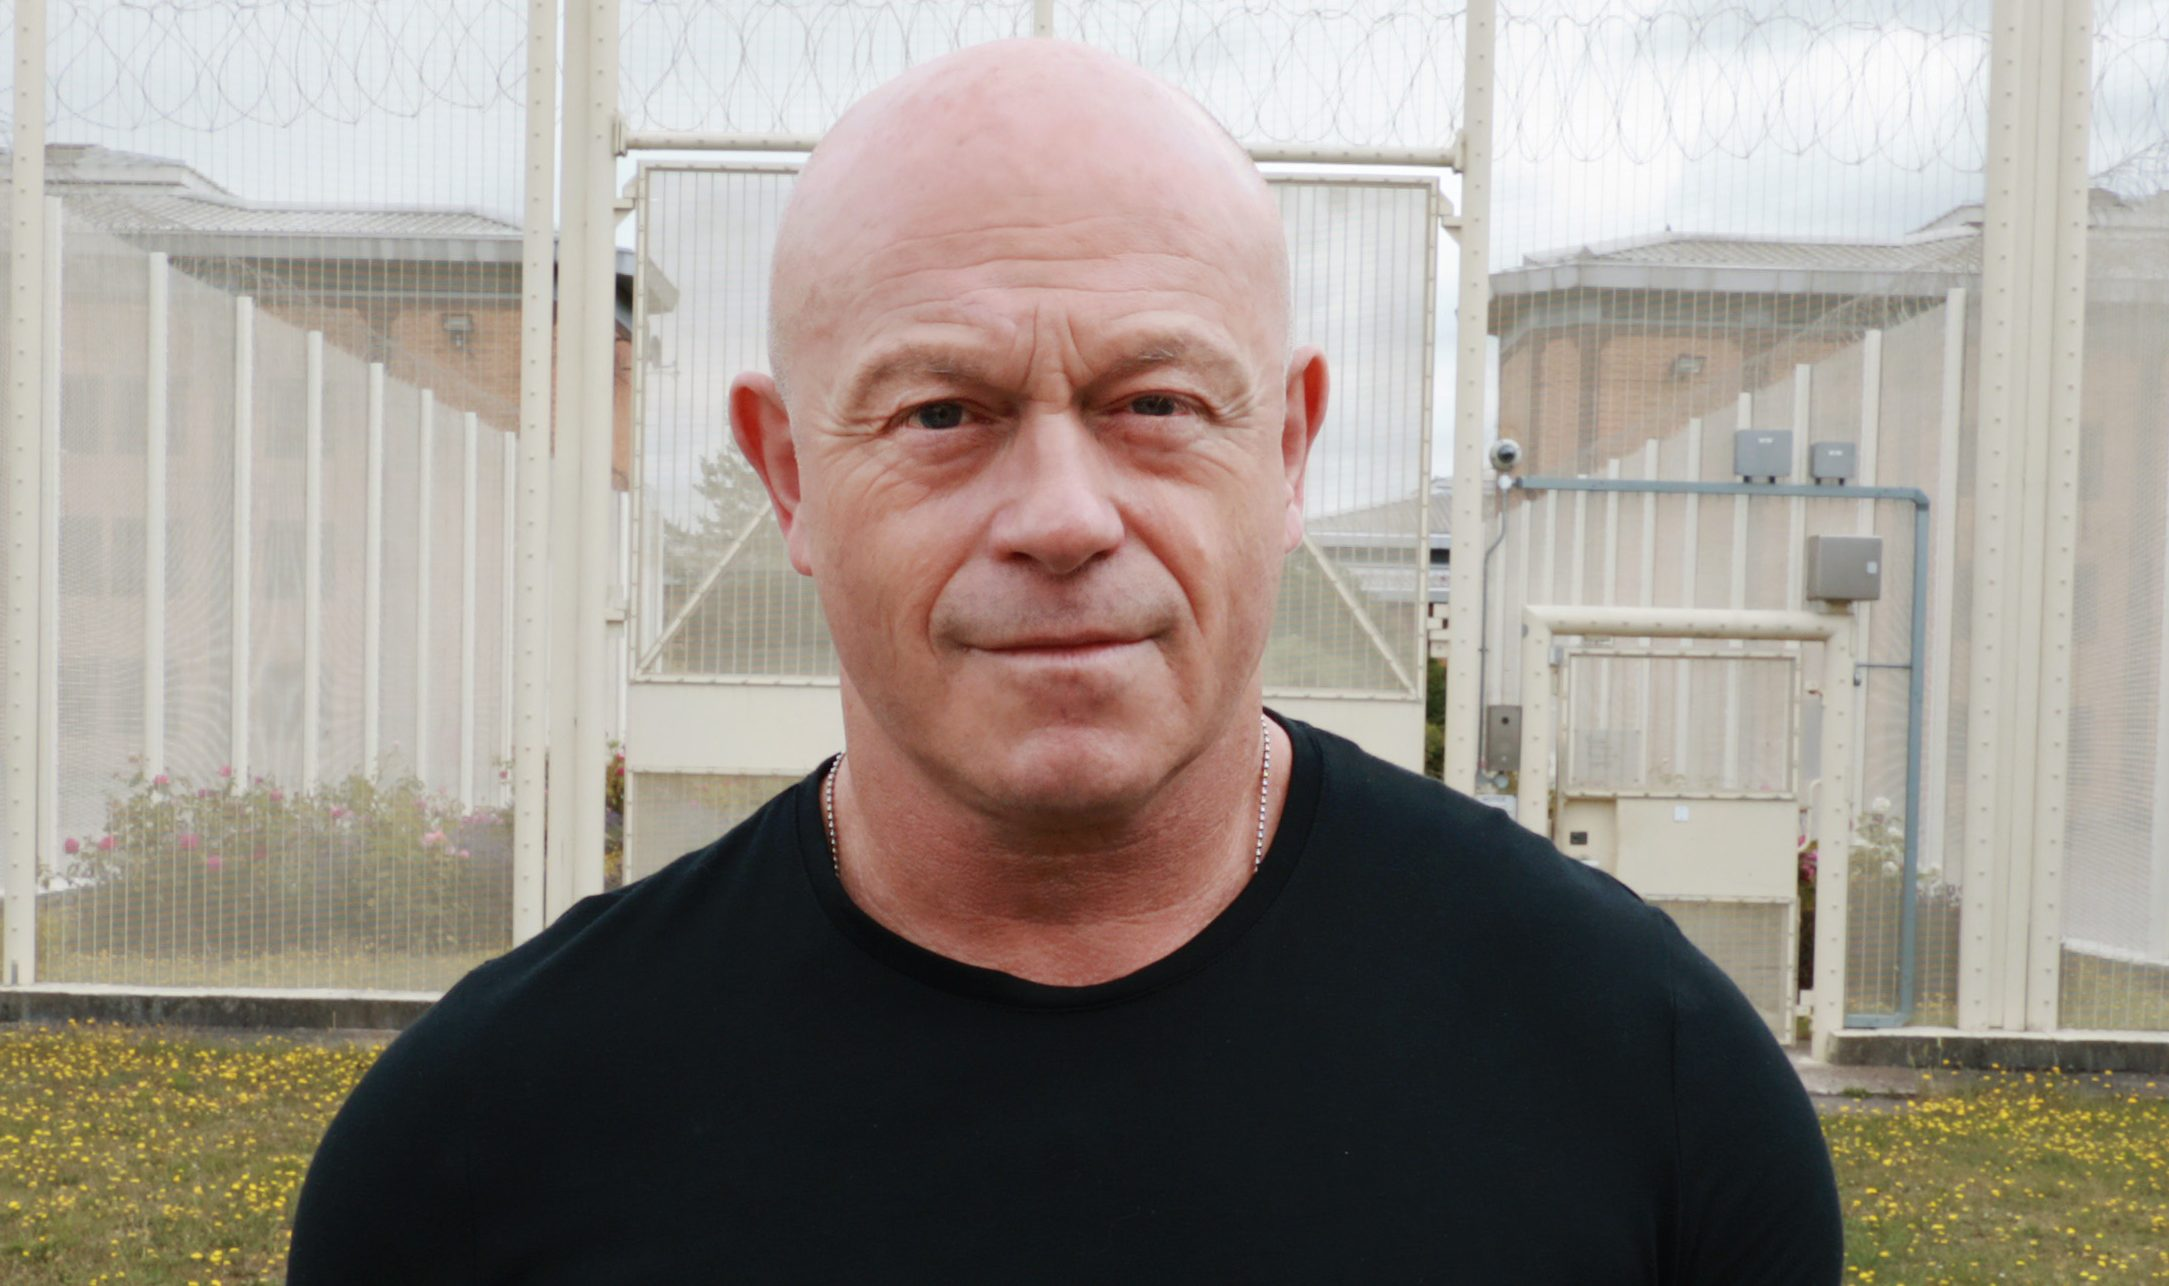 Ross Kemp 'unable to speak' as he inhales Spice in shocking new prison documentary